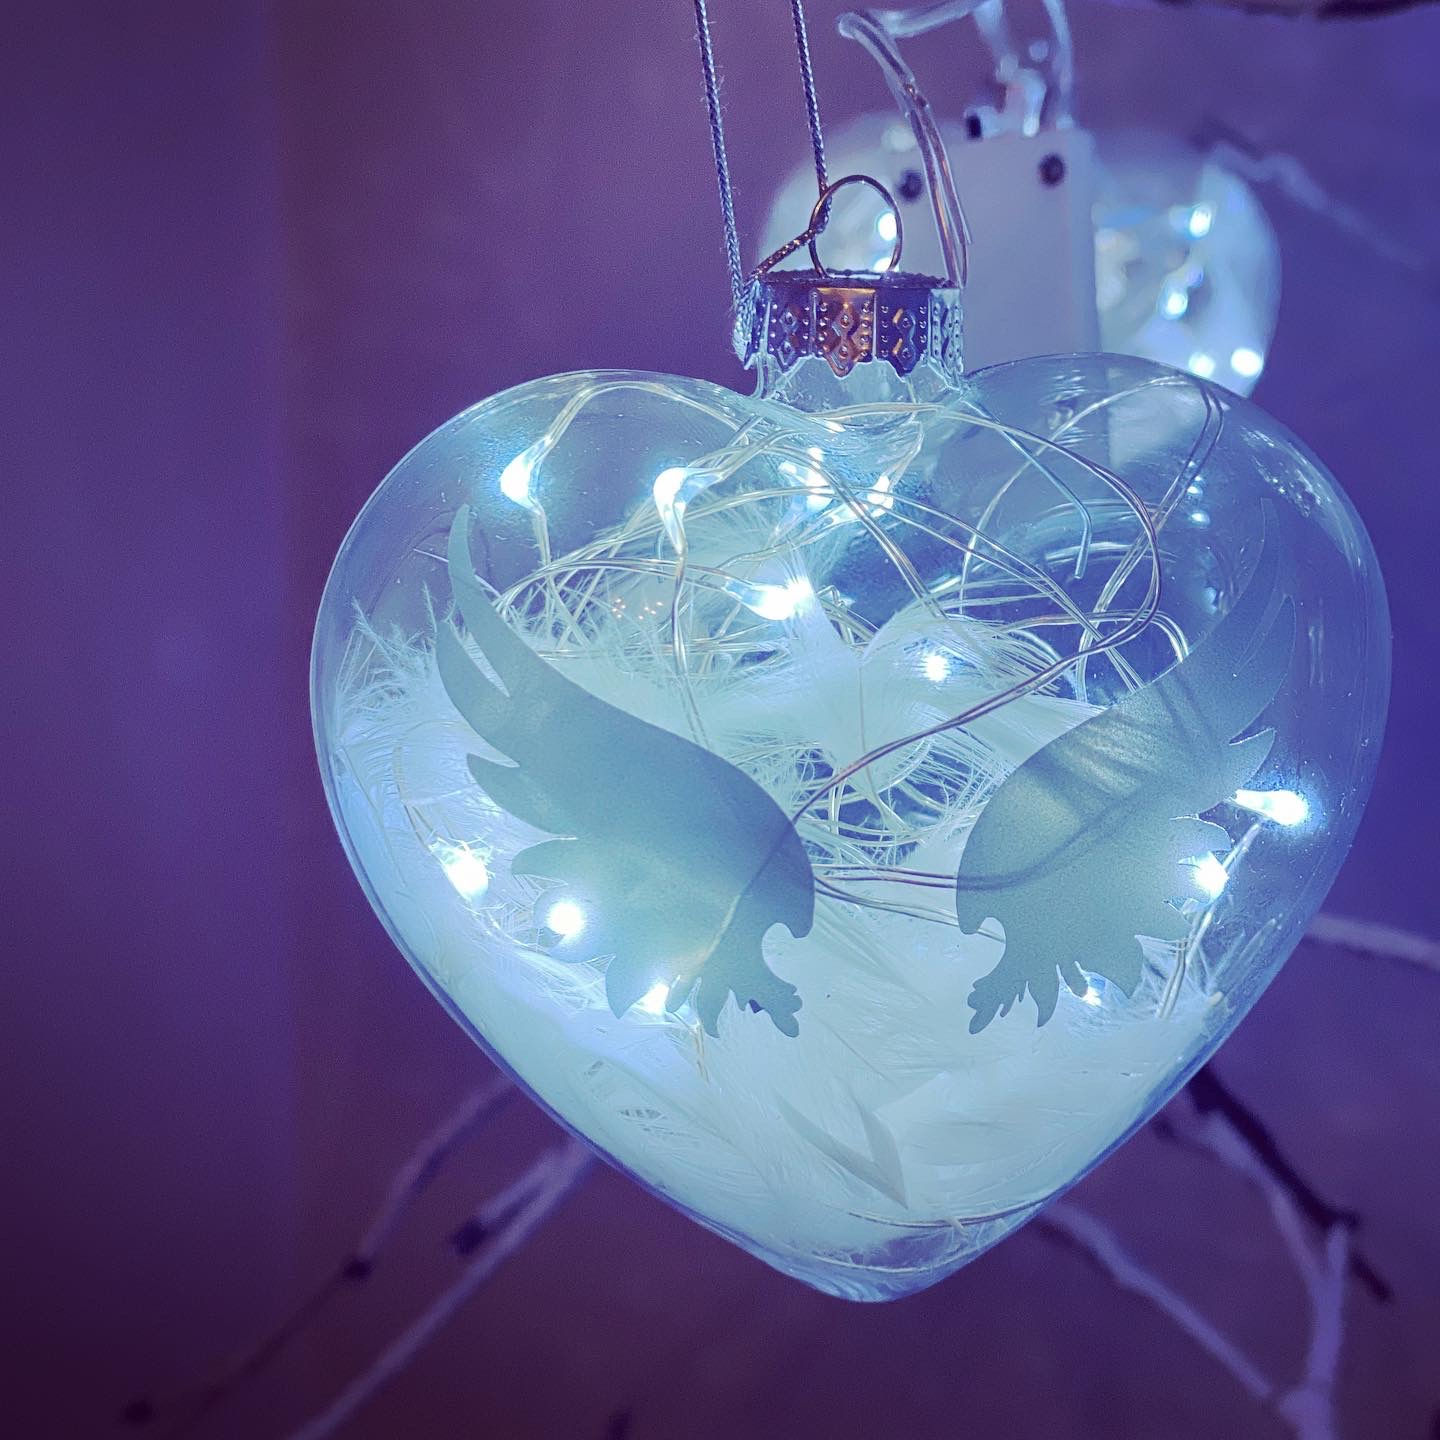 Glass in memory bauble with LED lights - Pugglewick Candles